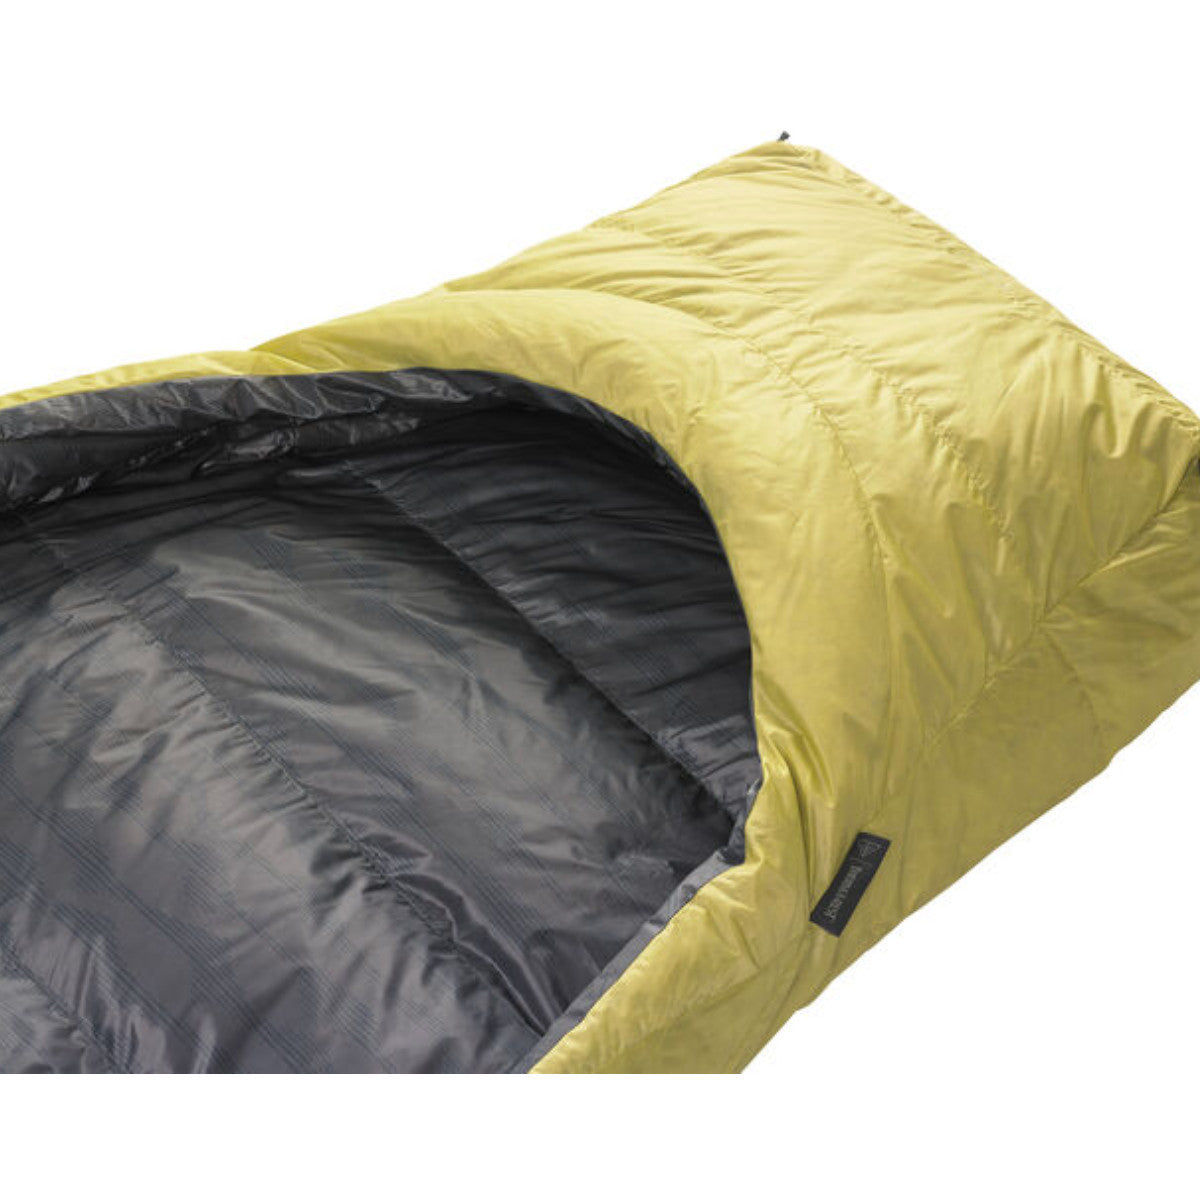 Thermarest Corus 20F/-6C Quilt in golden colour showing foot pocket